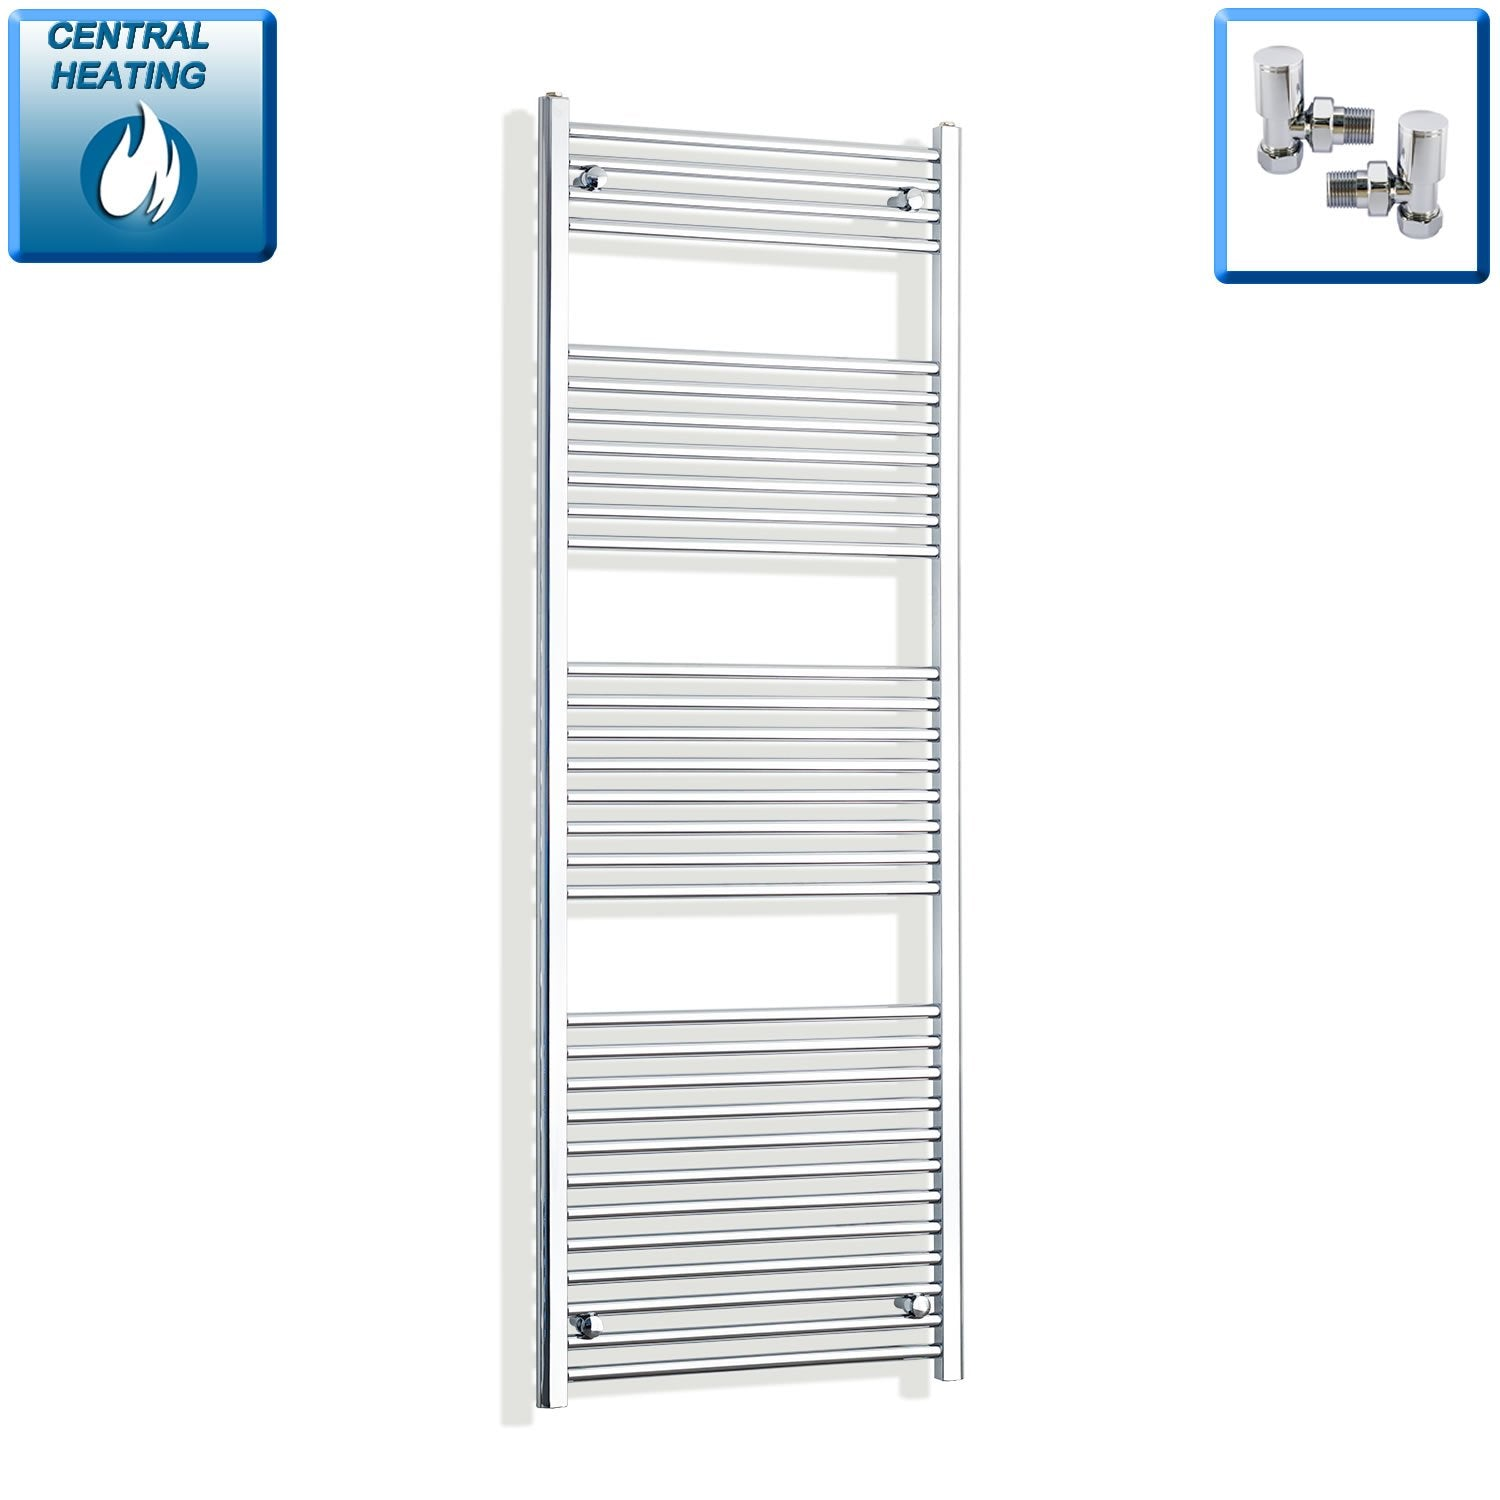 650mm Wide 1800mm High Flat Chrome Heated Towel Rail Radiator HTR,With Angled Valve